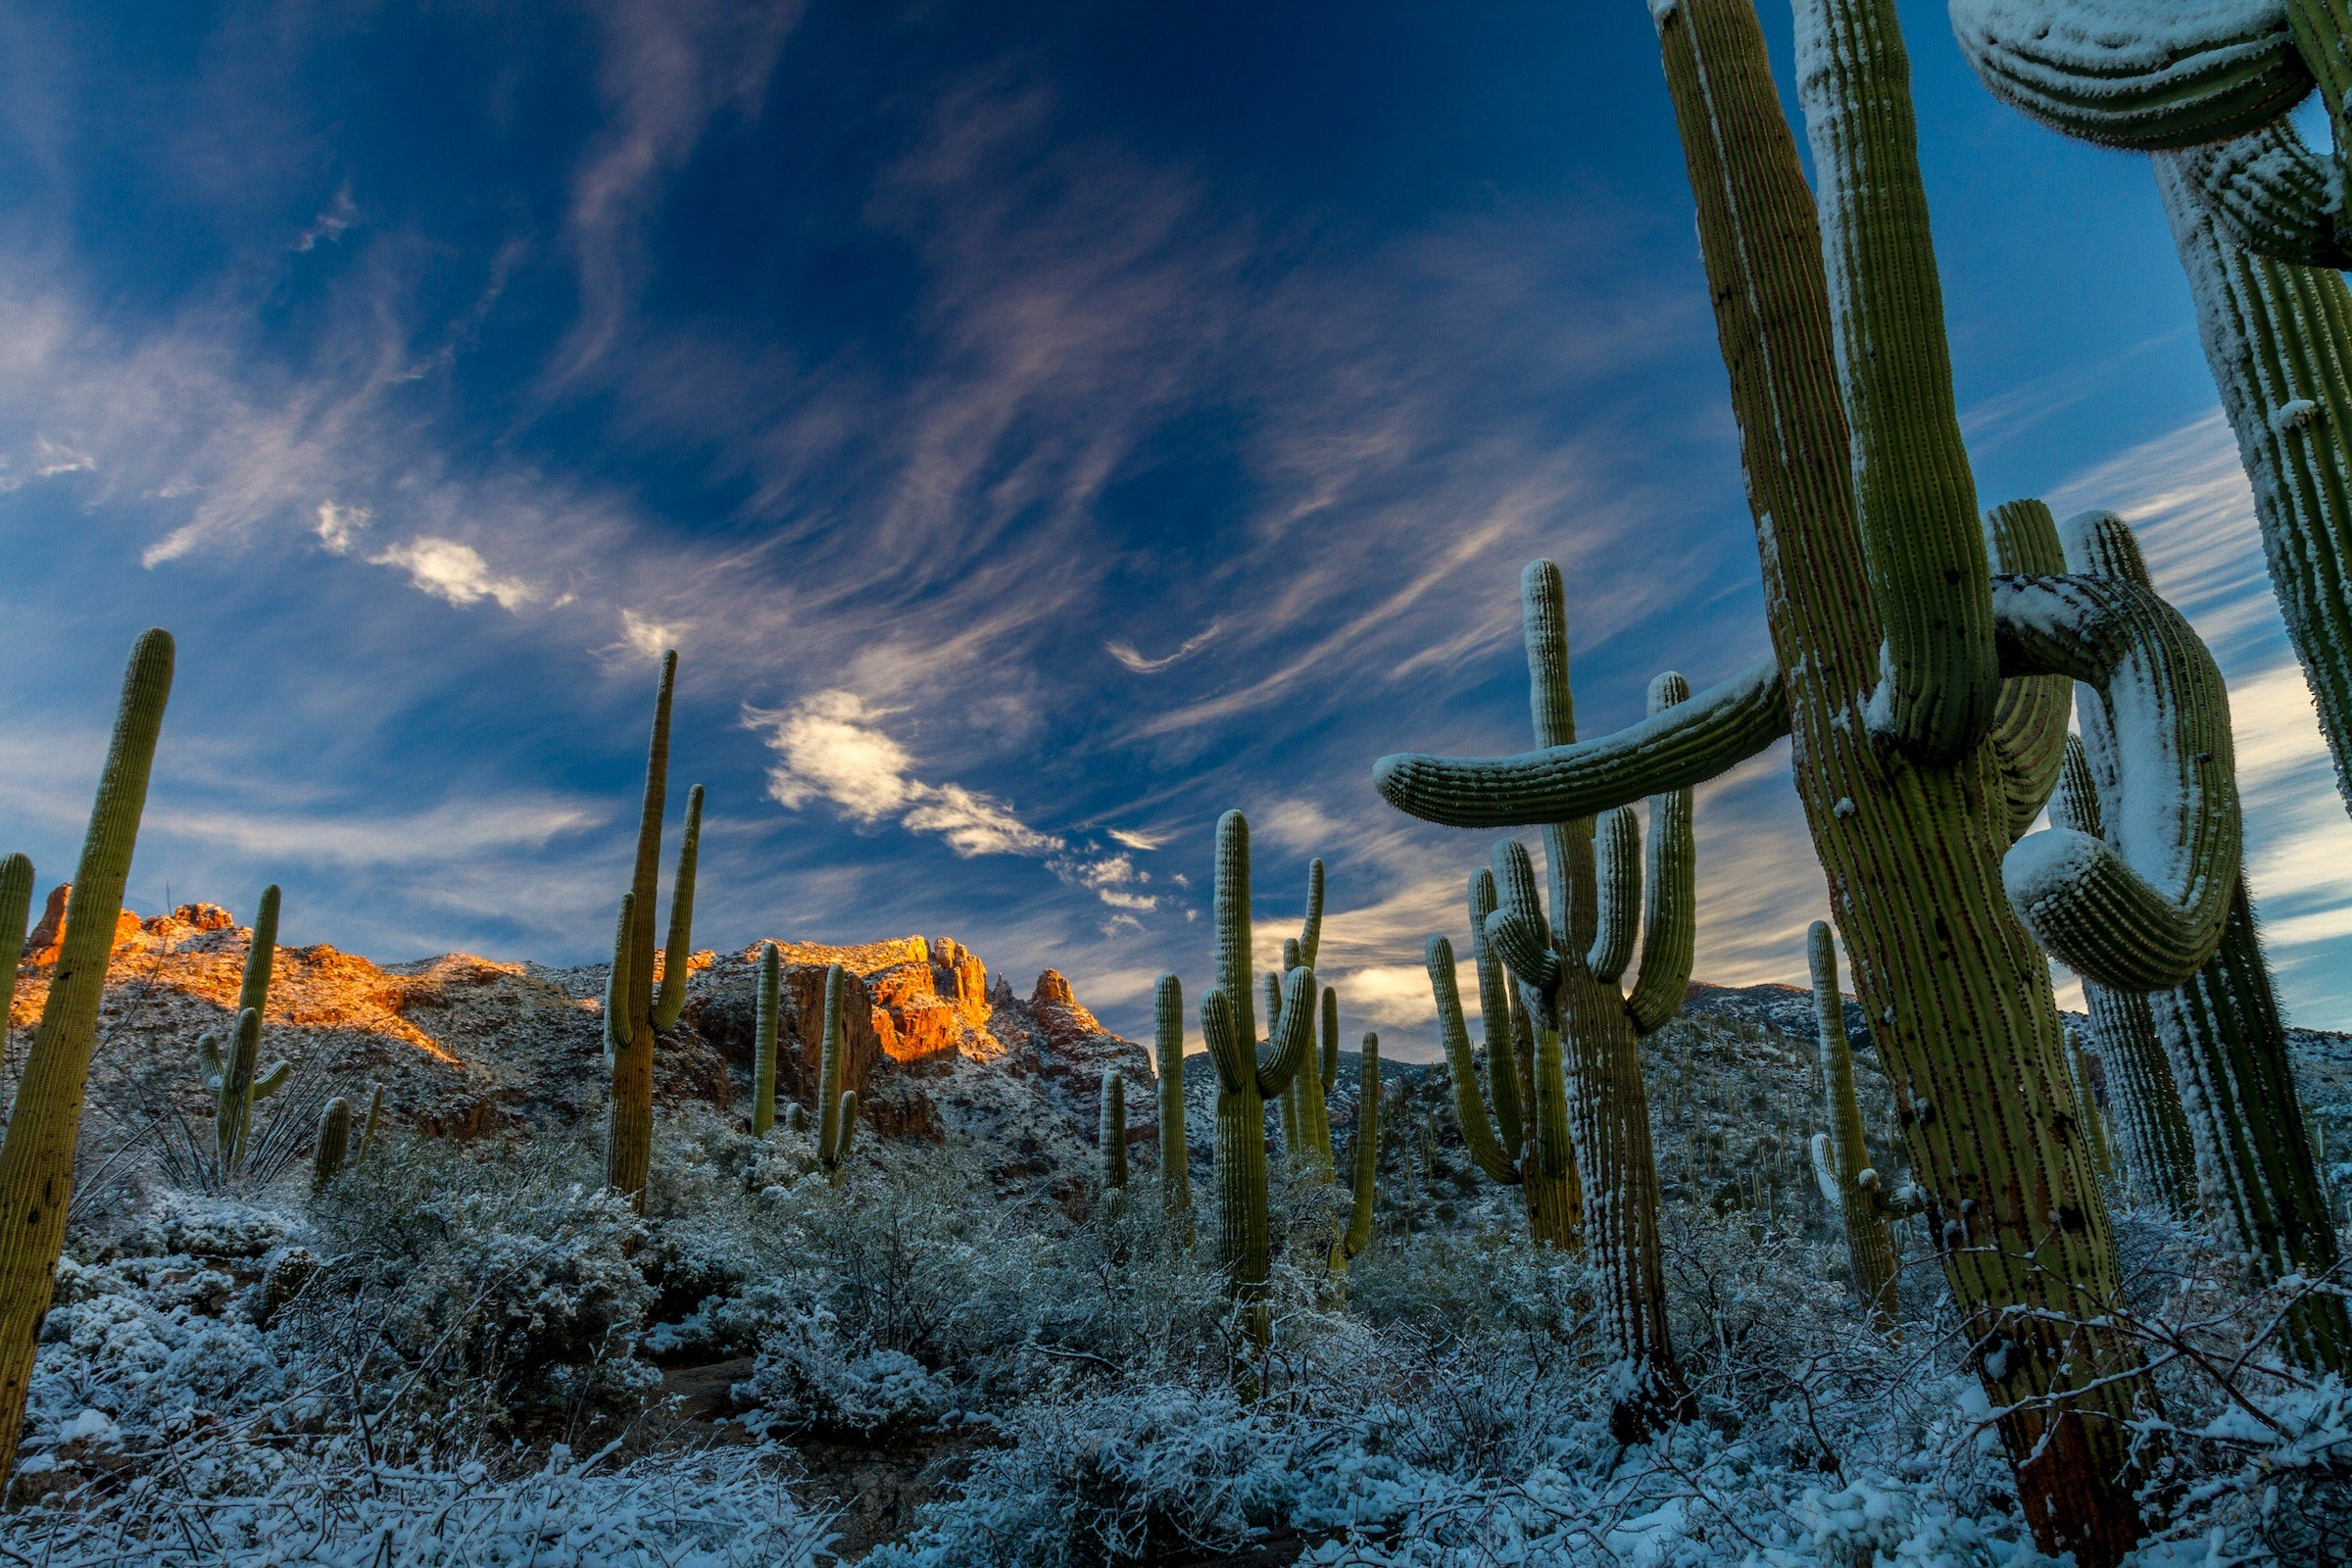 frosty cacti in the desert